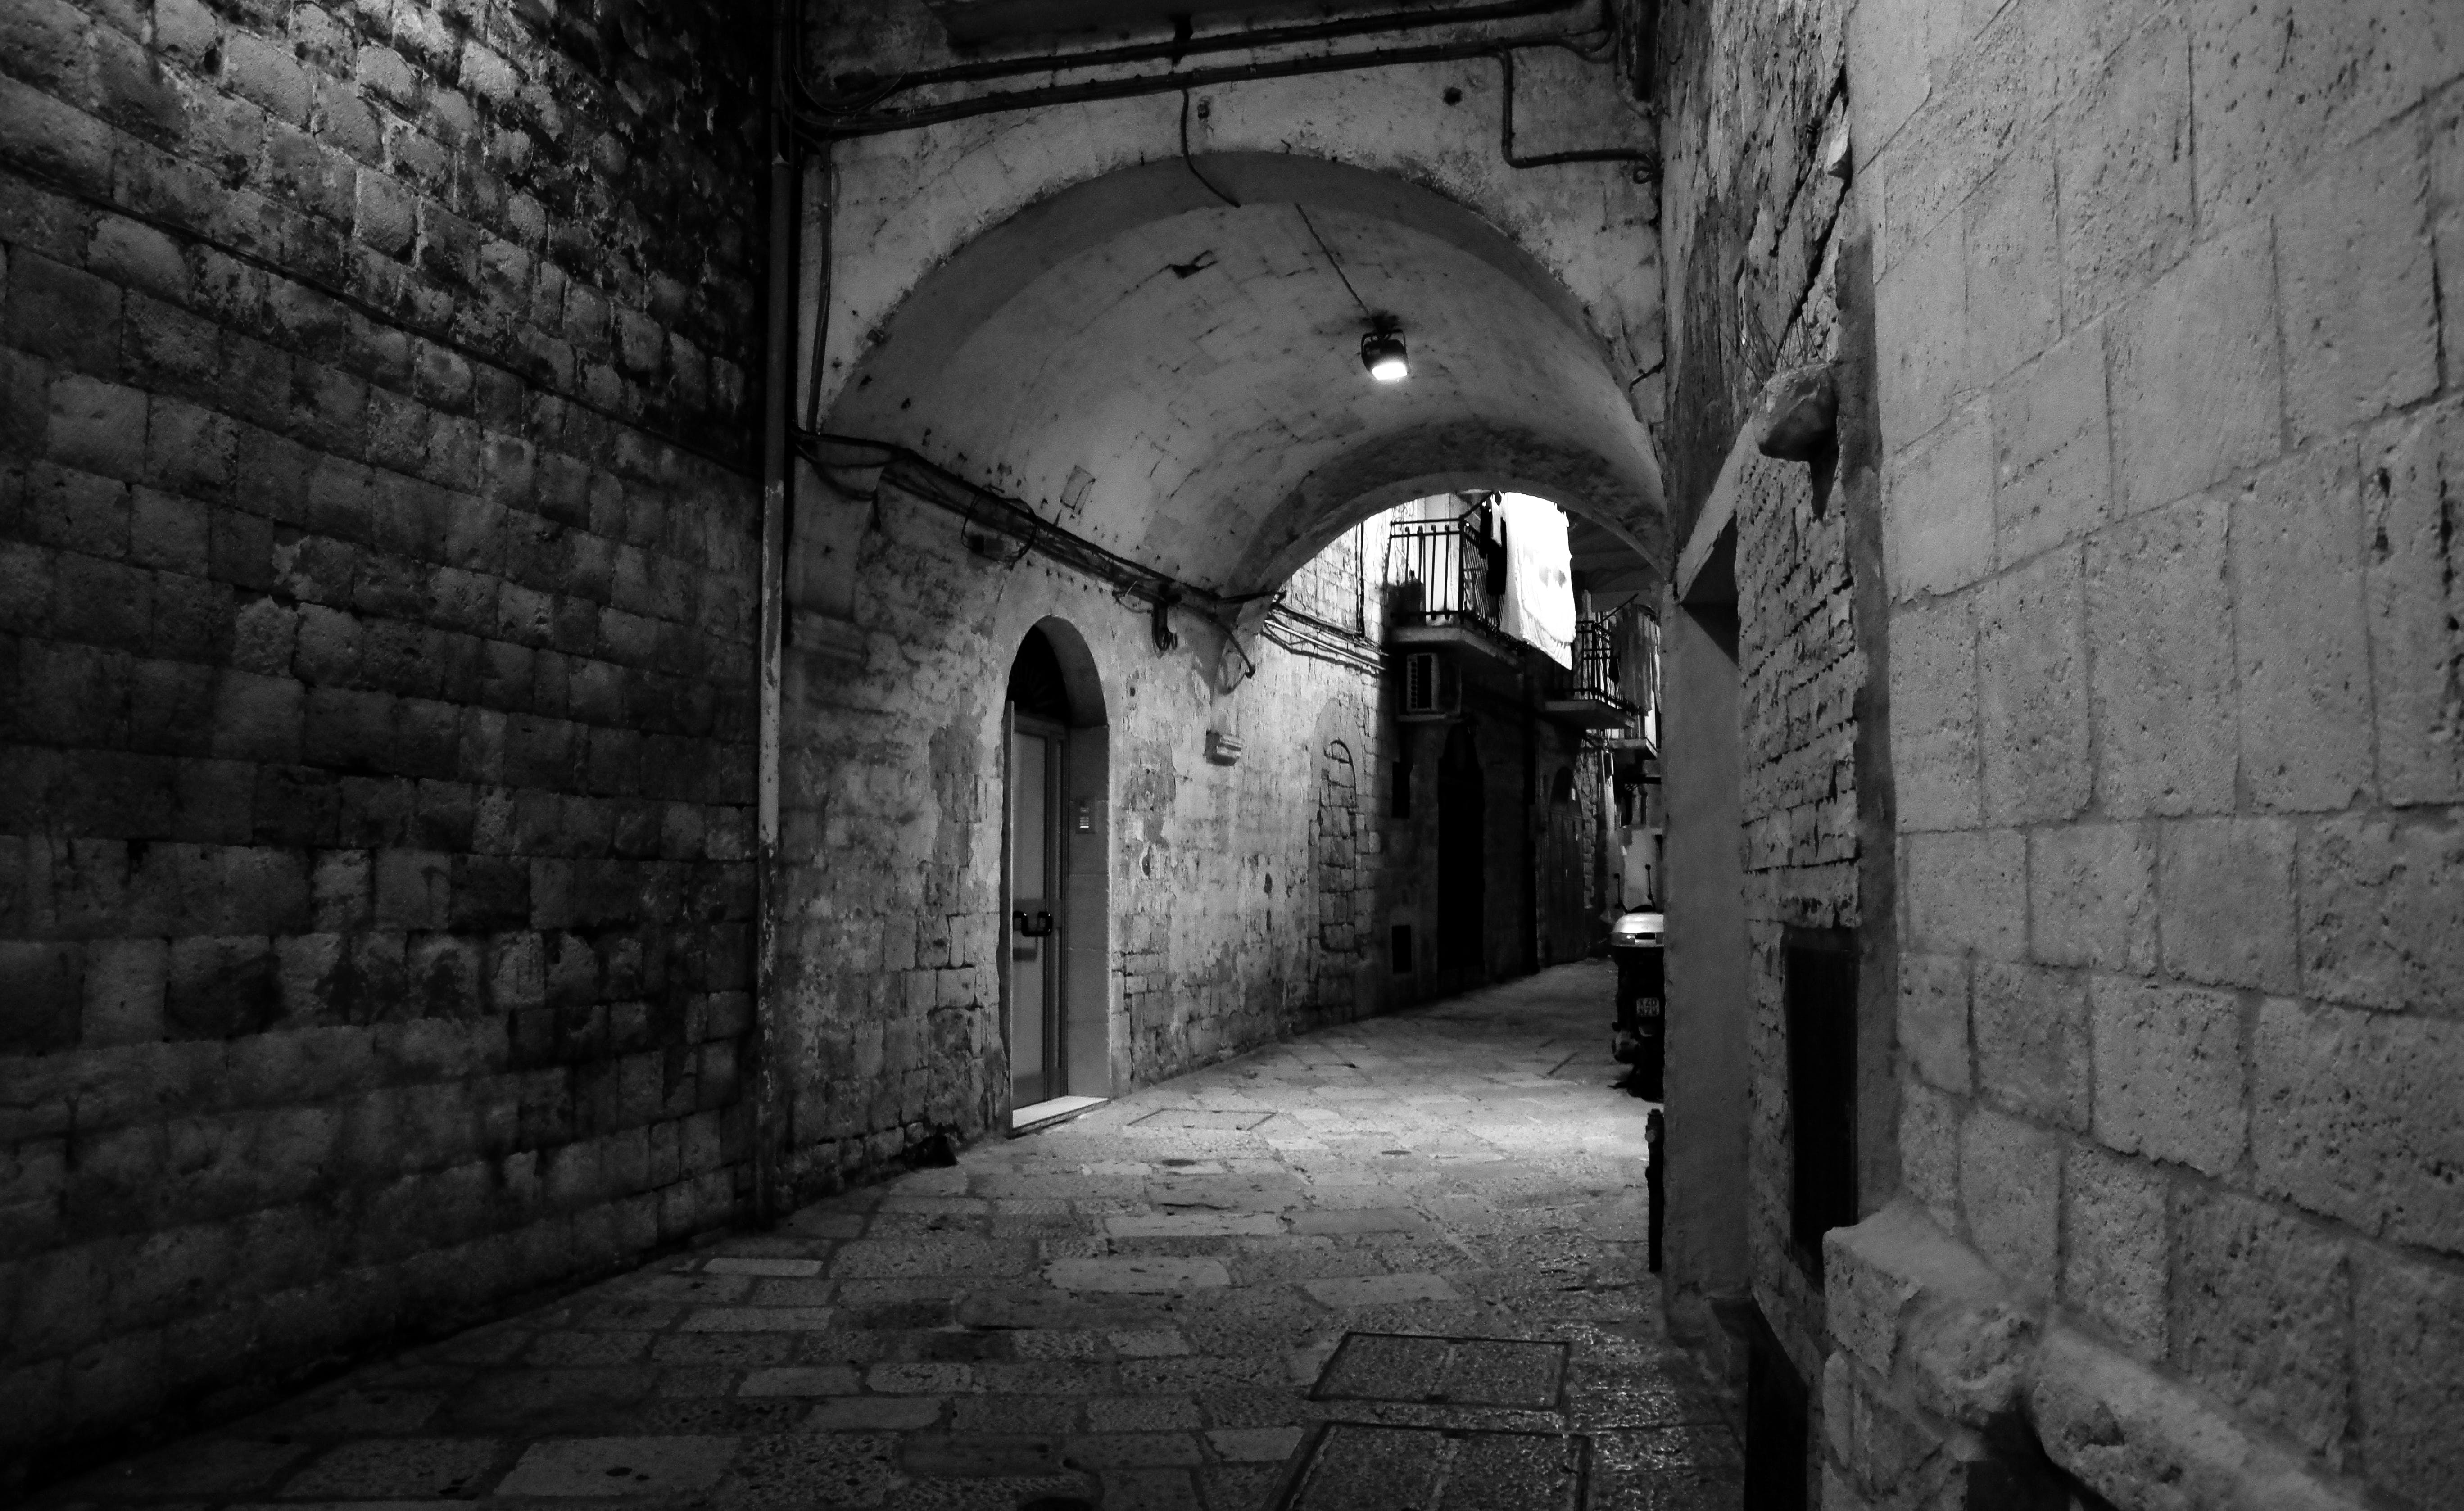 Grayscale Photo of Brick Walled Alley